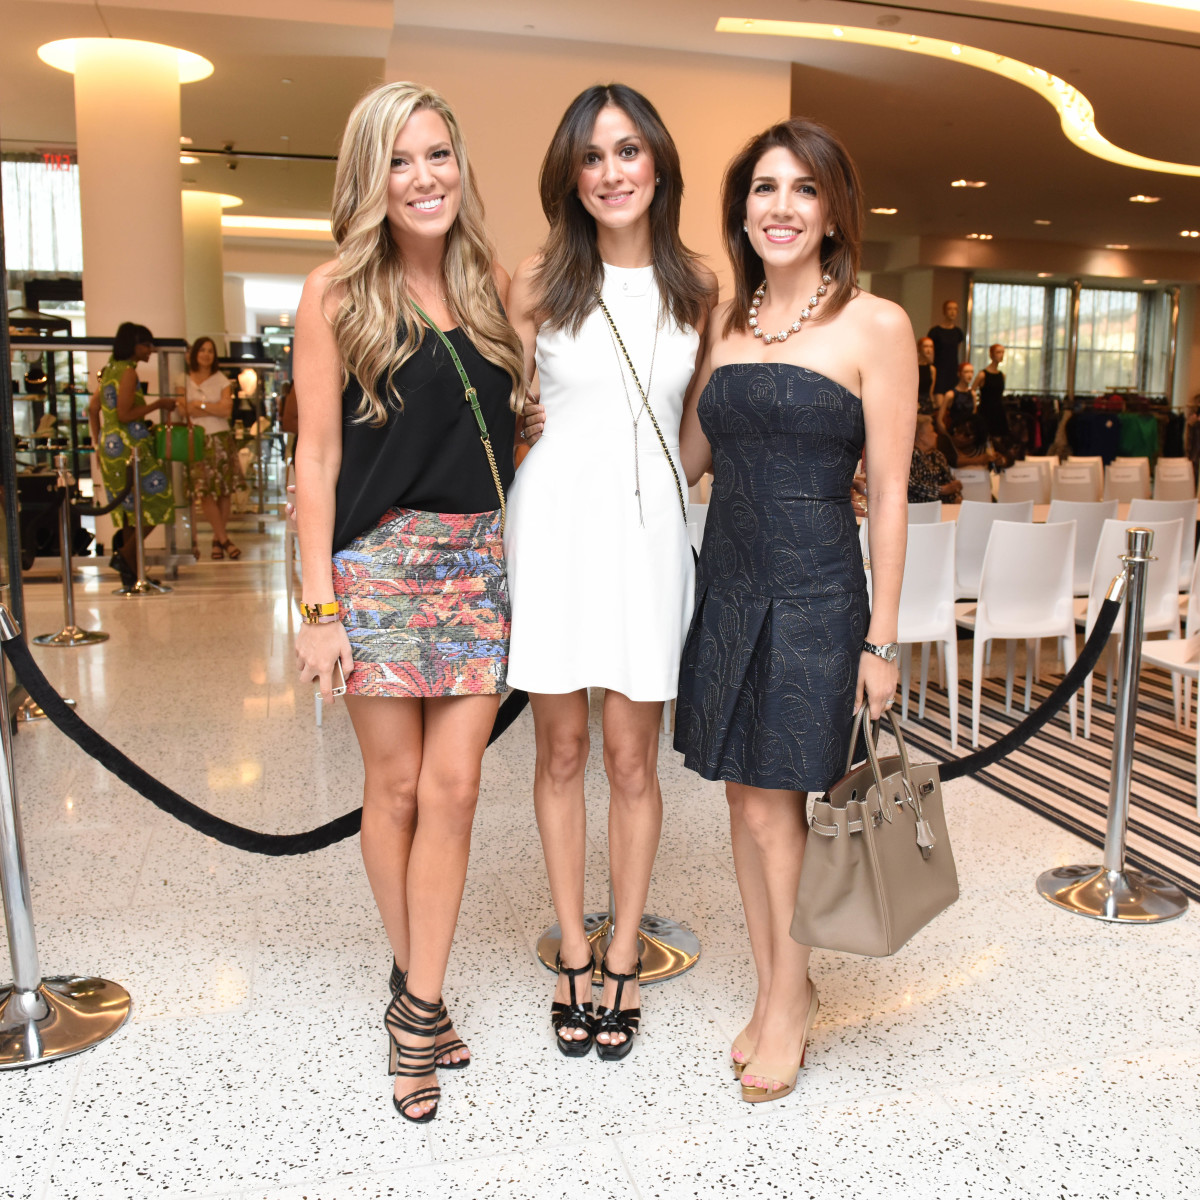 News, Shelby, Fresh Faces of Fashion, Sept. 2015, Holly Alvis, Heidi Kashani, Neekie Kashani